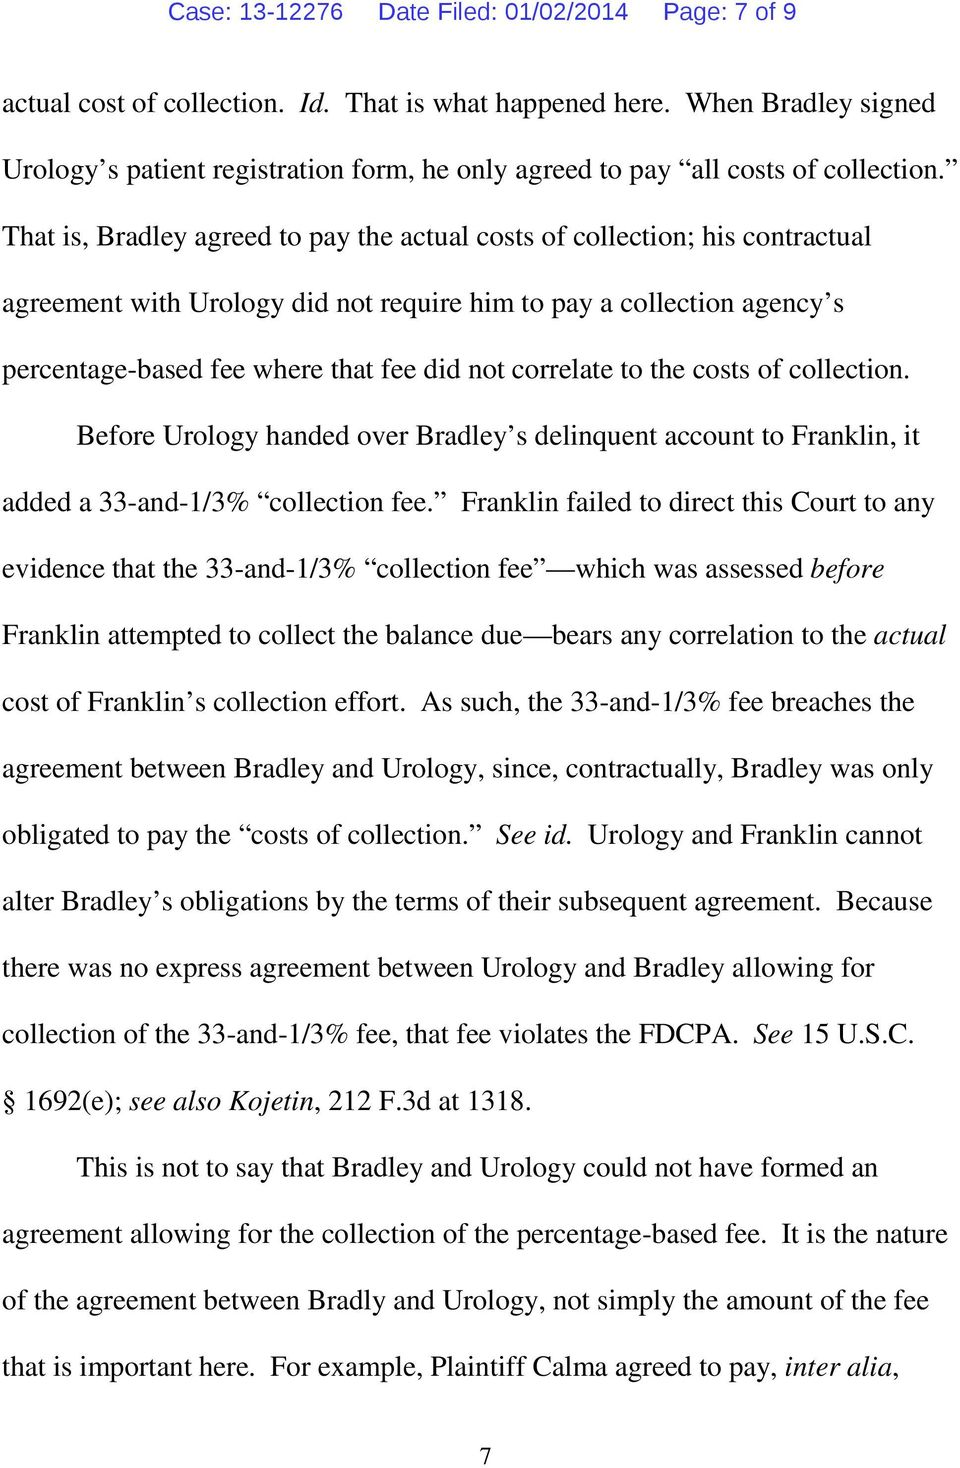 That is, Bradley agreed to pay the actual costs of collection; his contractual agreement with Urology did not require him to pay a collection agency s percentage-based fee where that fee did not